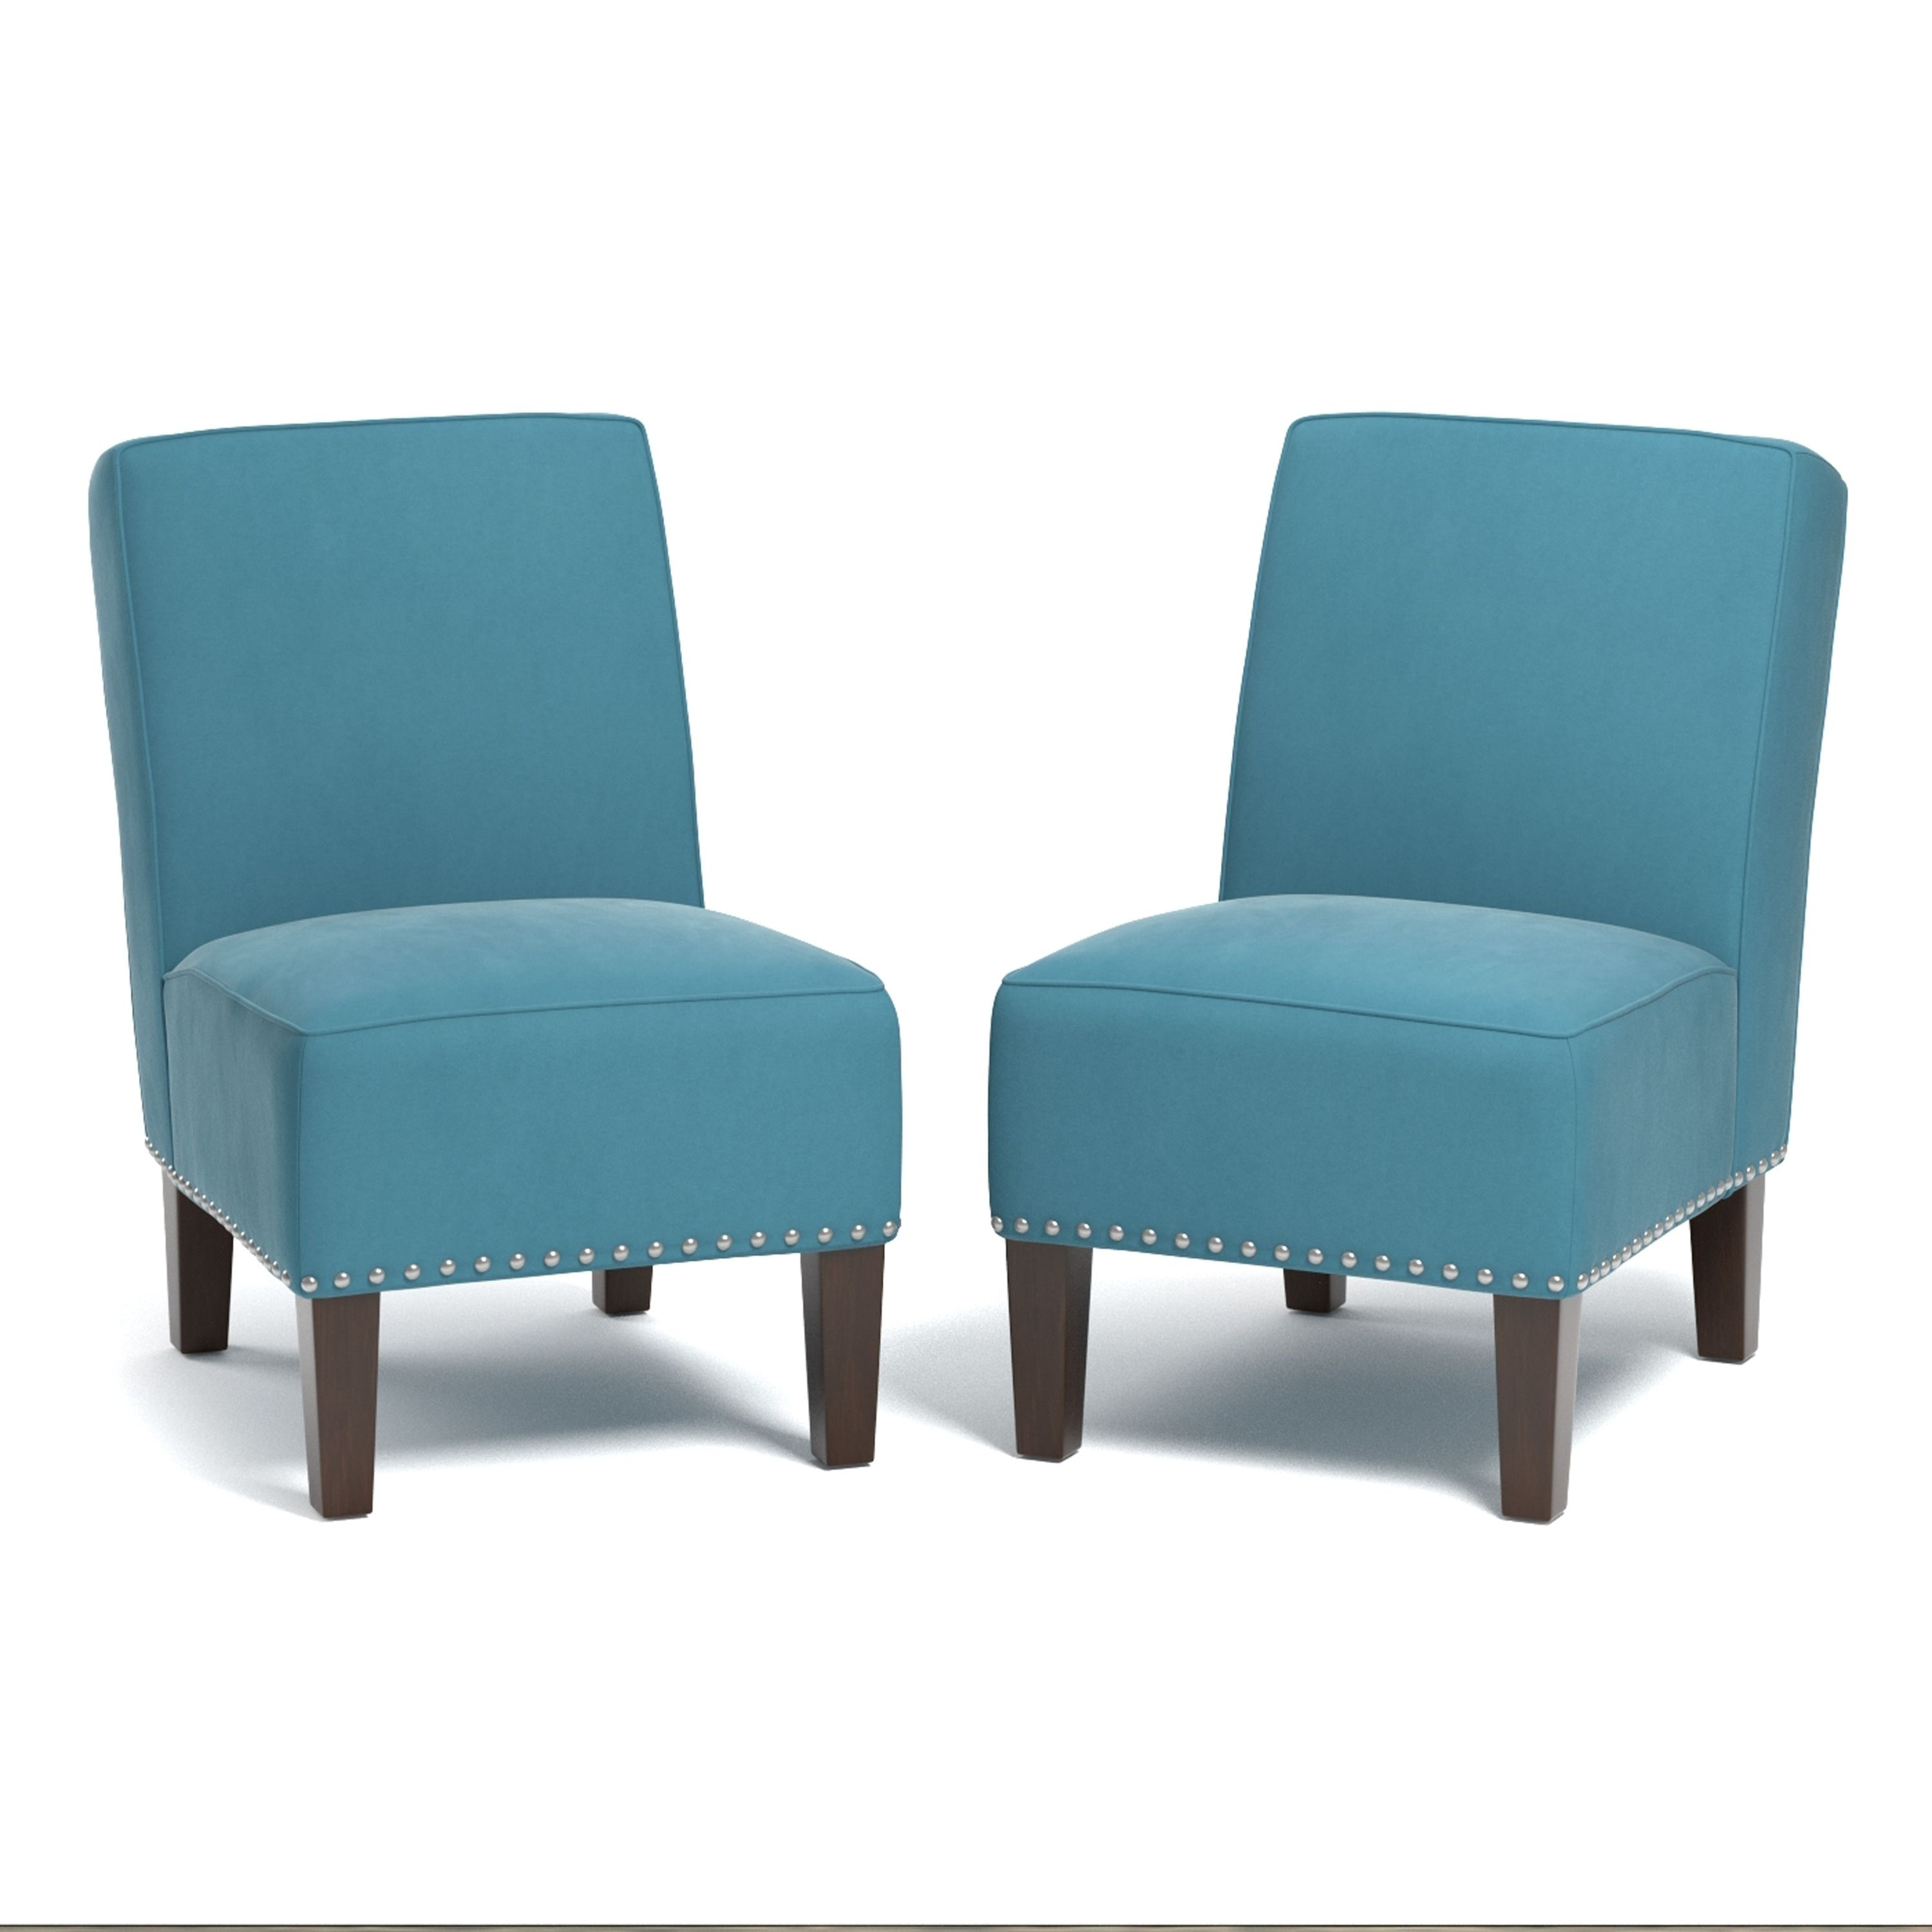 Best Handy Living Brodee Armless Chairs In Turquoise Blue 400 x 300